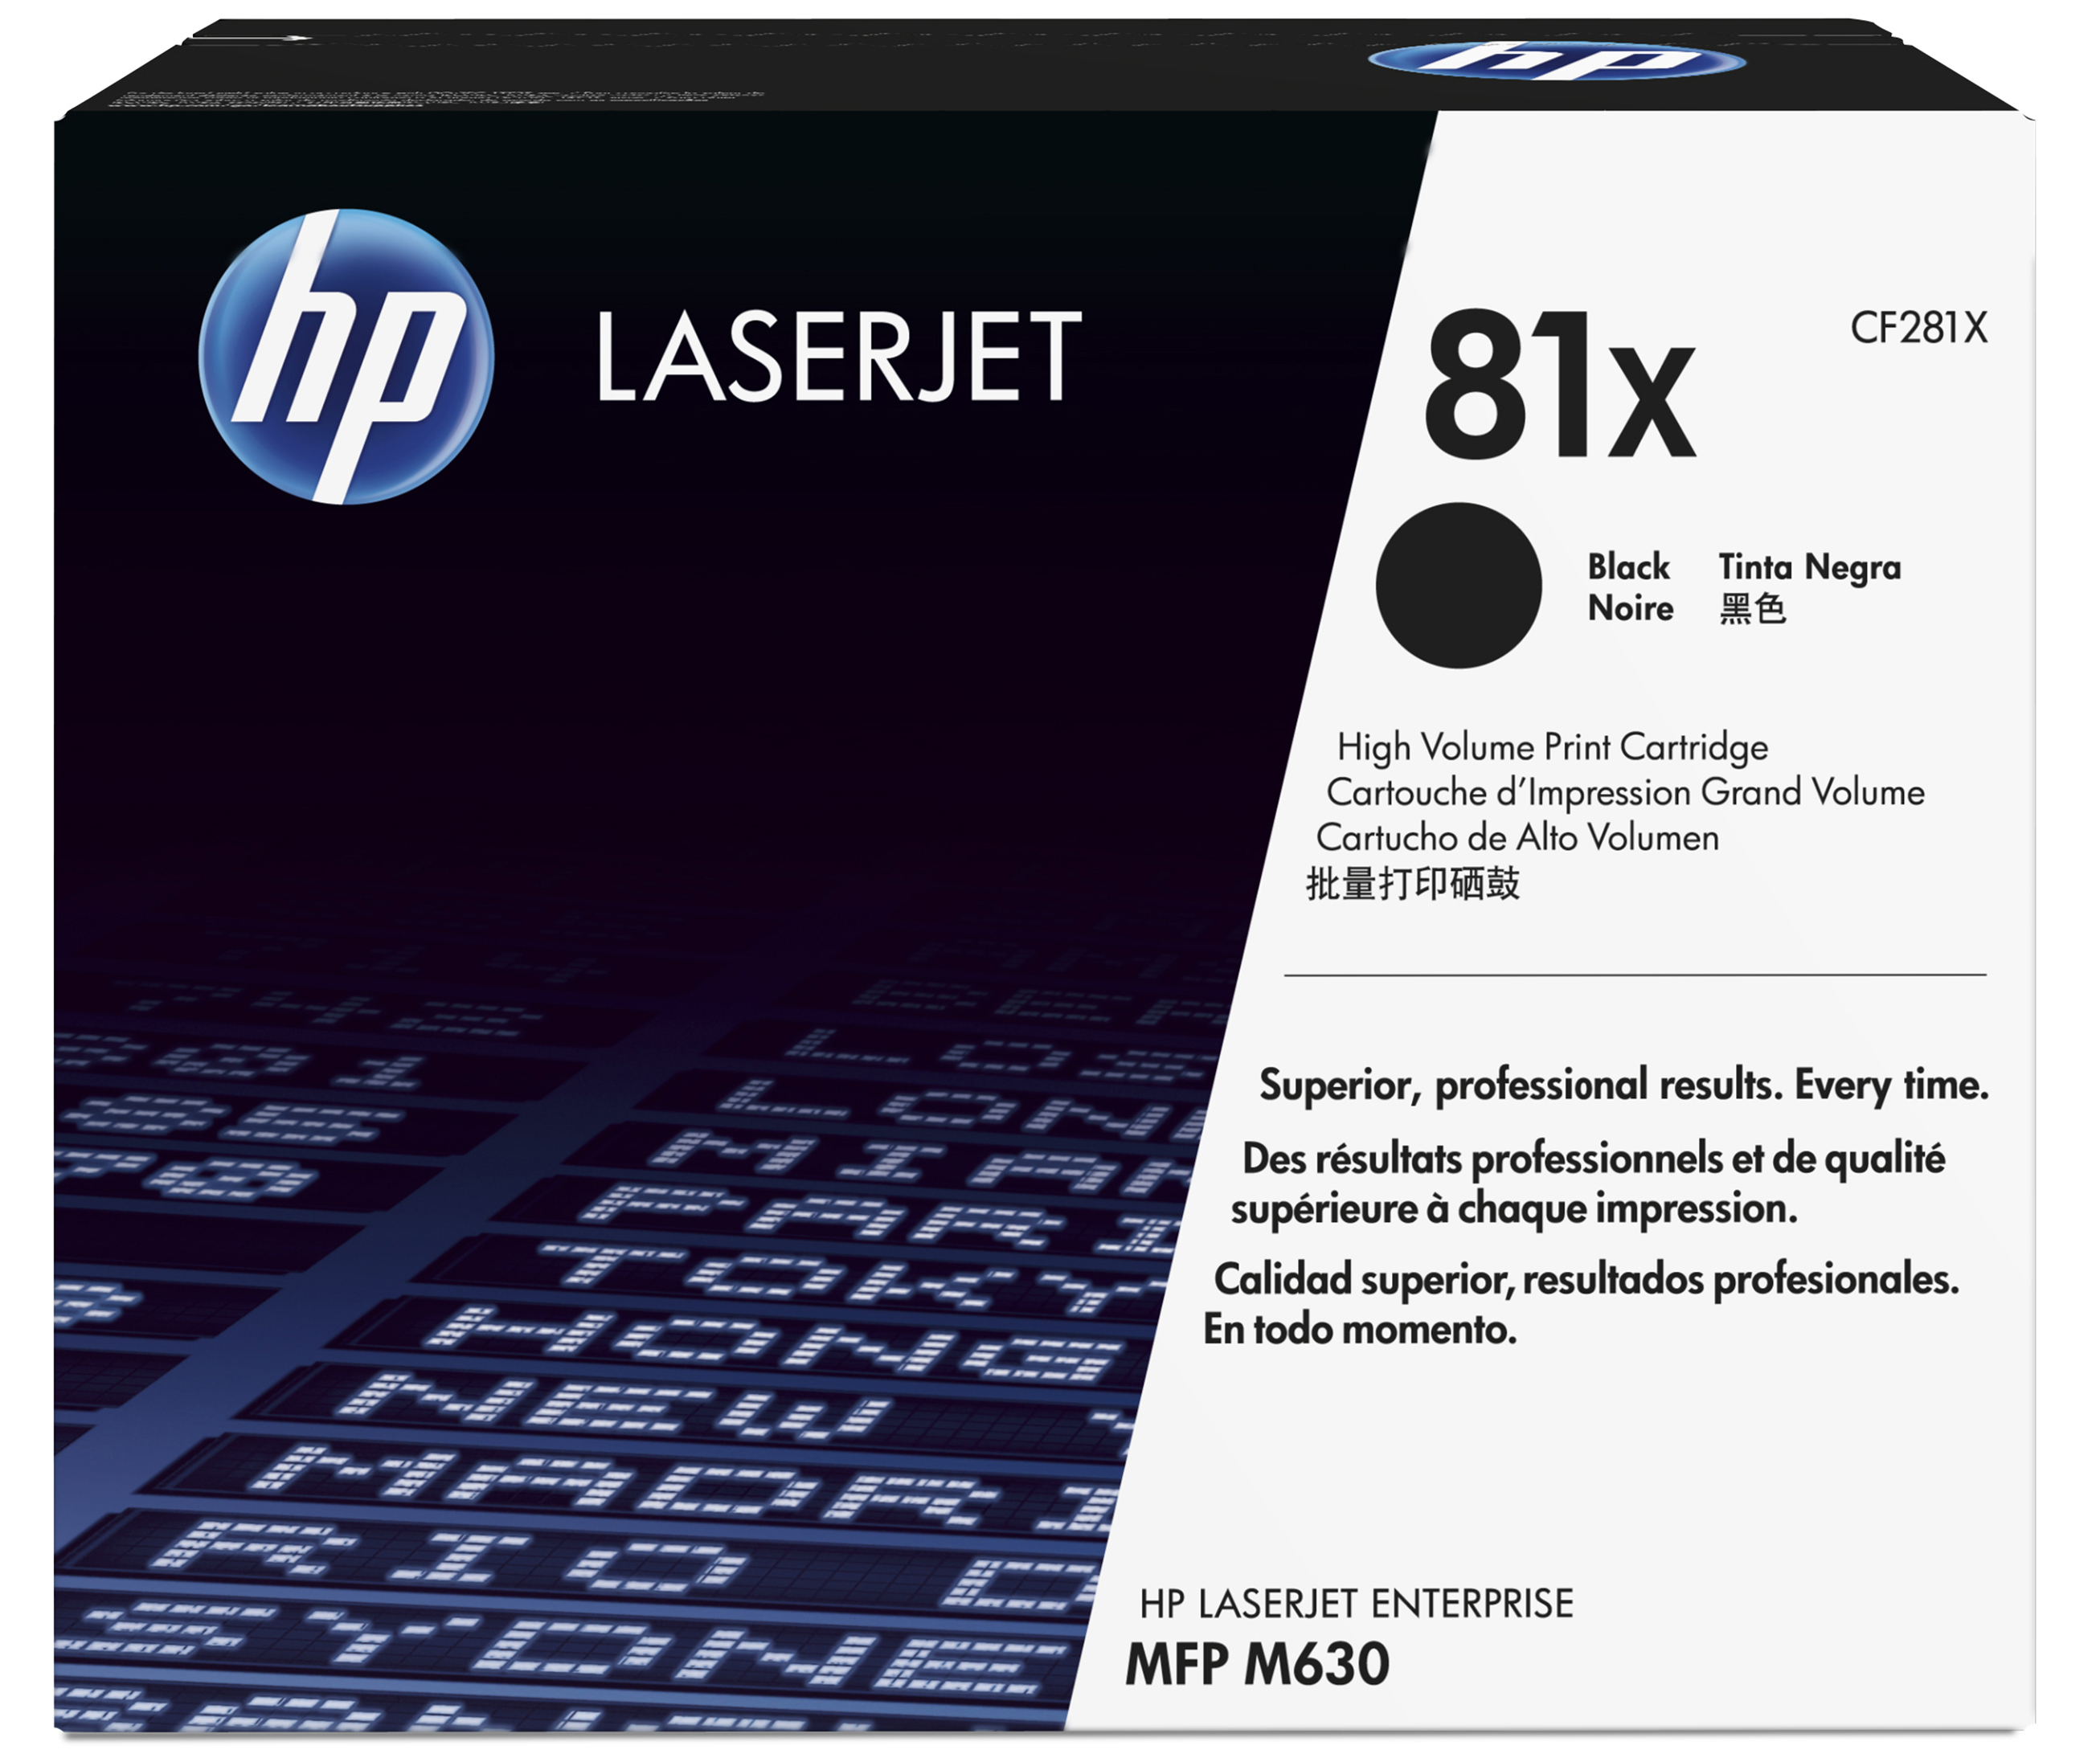 Hpcf281x       Hp 81x Black Laser Toner       Mfp M630 25000 Pages (not M604)                              - UF01